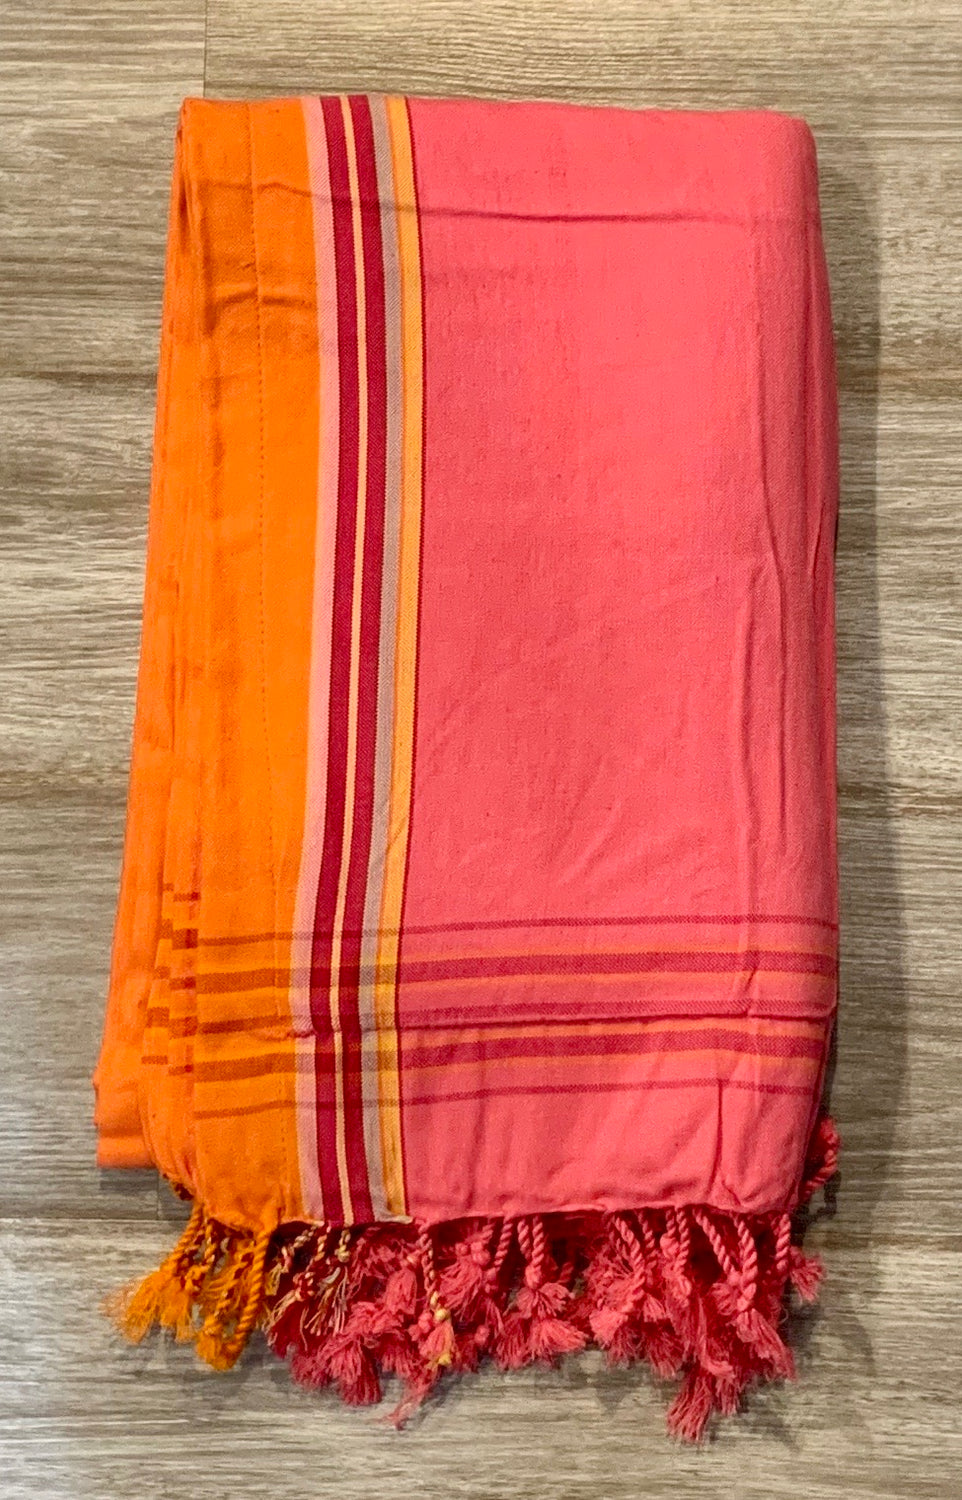 Turkish beach towel with terry cloth lining (3 colors)